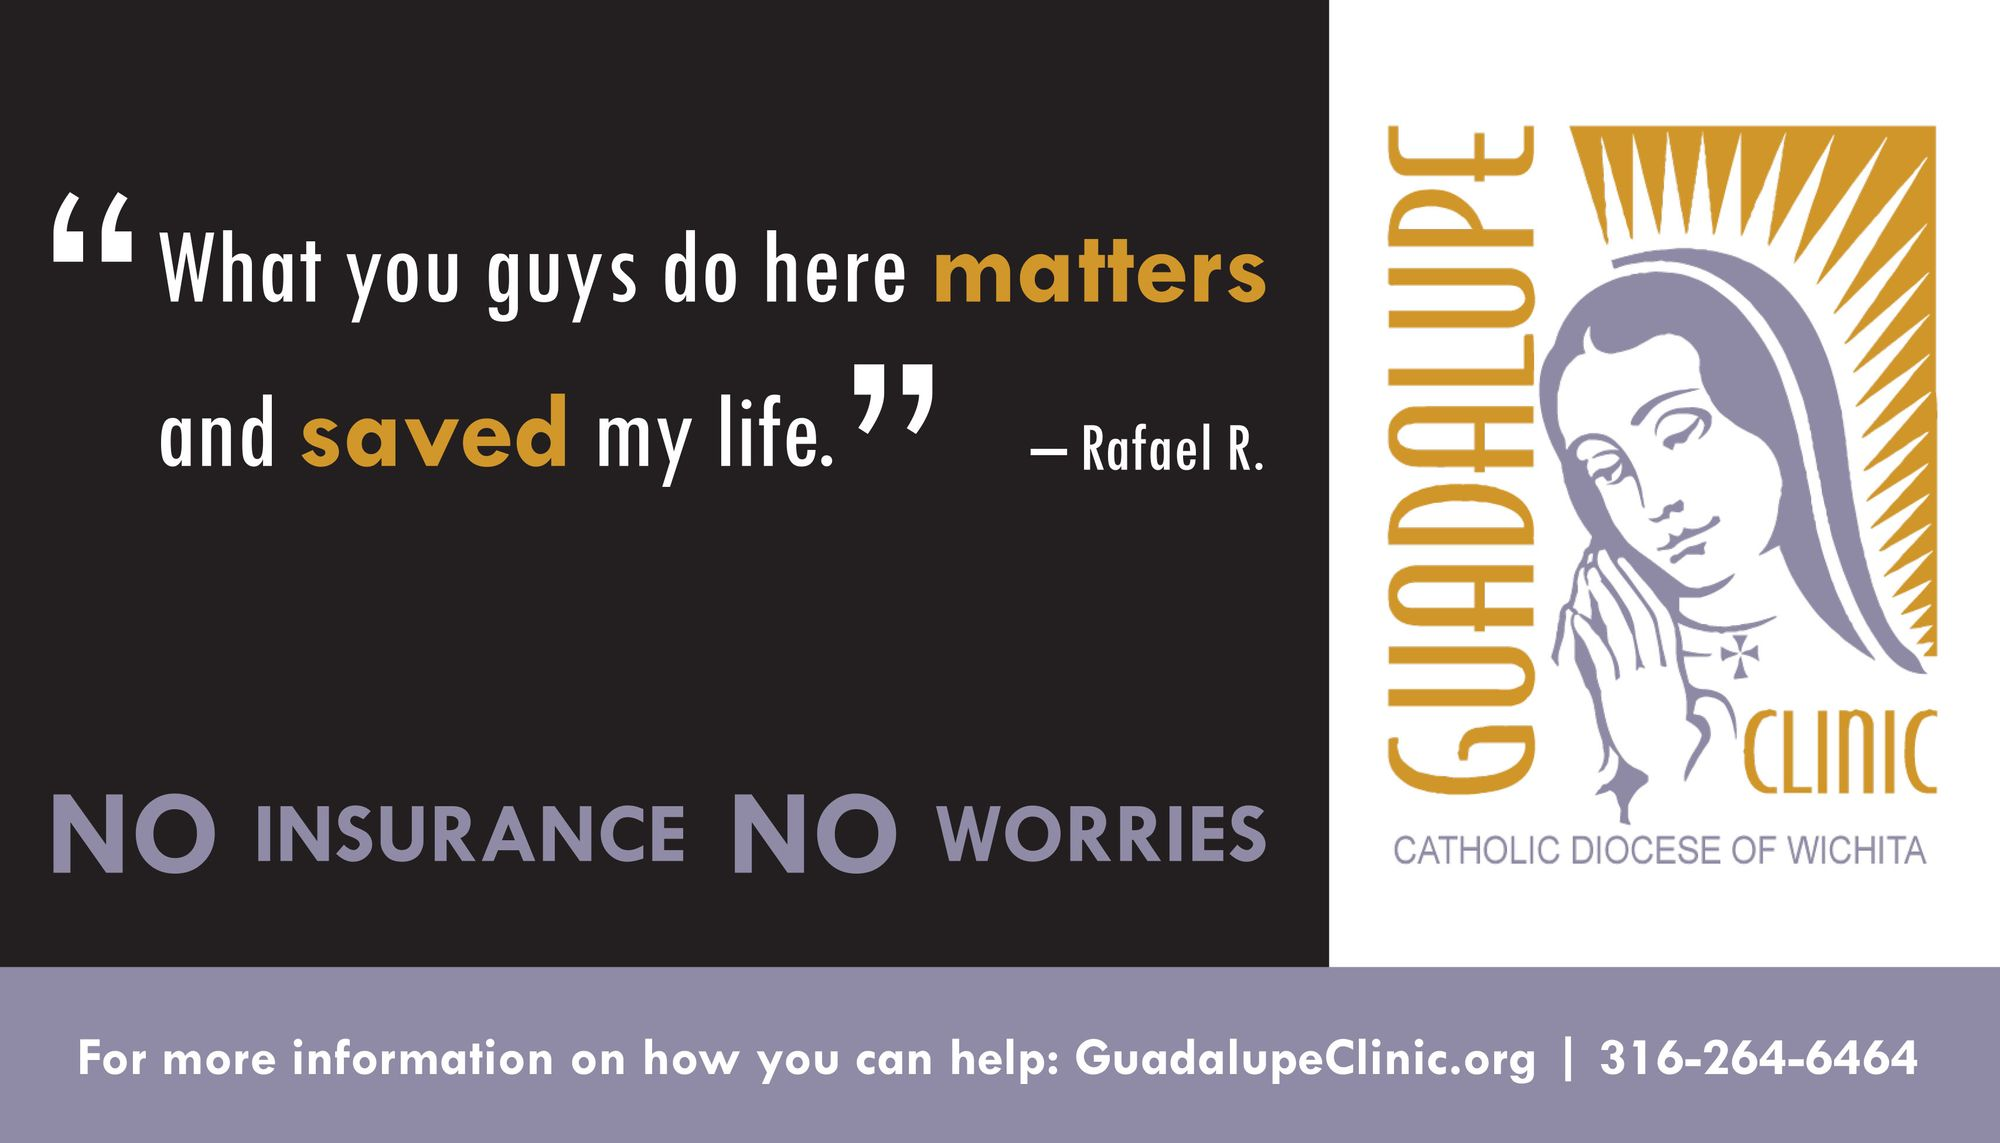 NU students find opportunities to volunteer at the Guadalupe Clinic